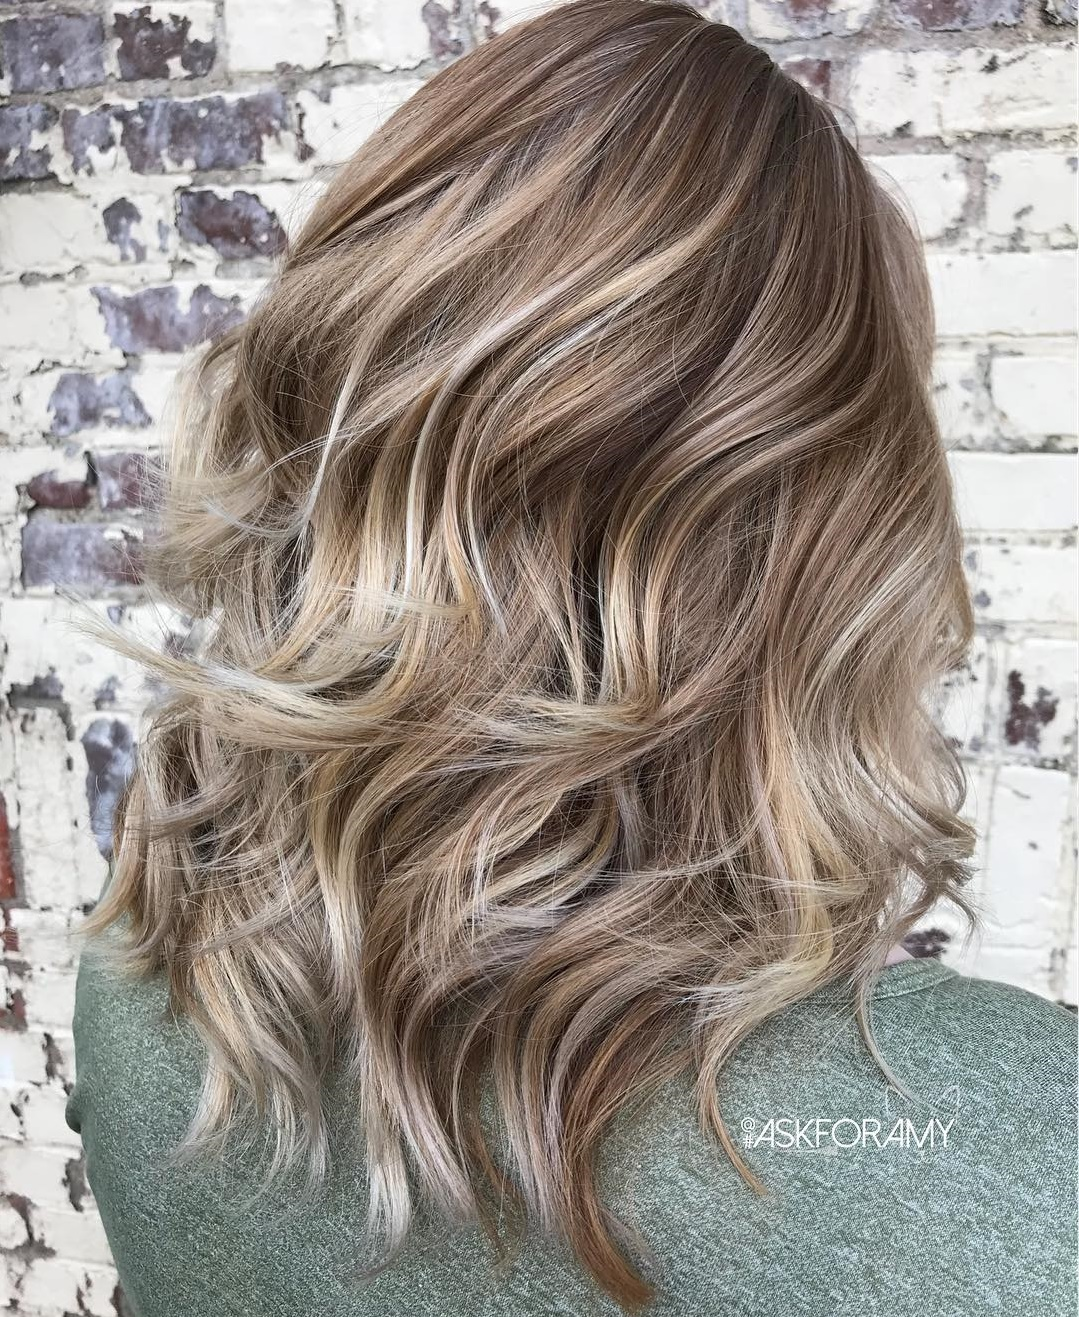 50 best medium length layered haircuts in 2019 - hair adviser